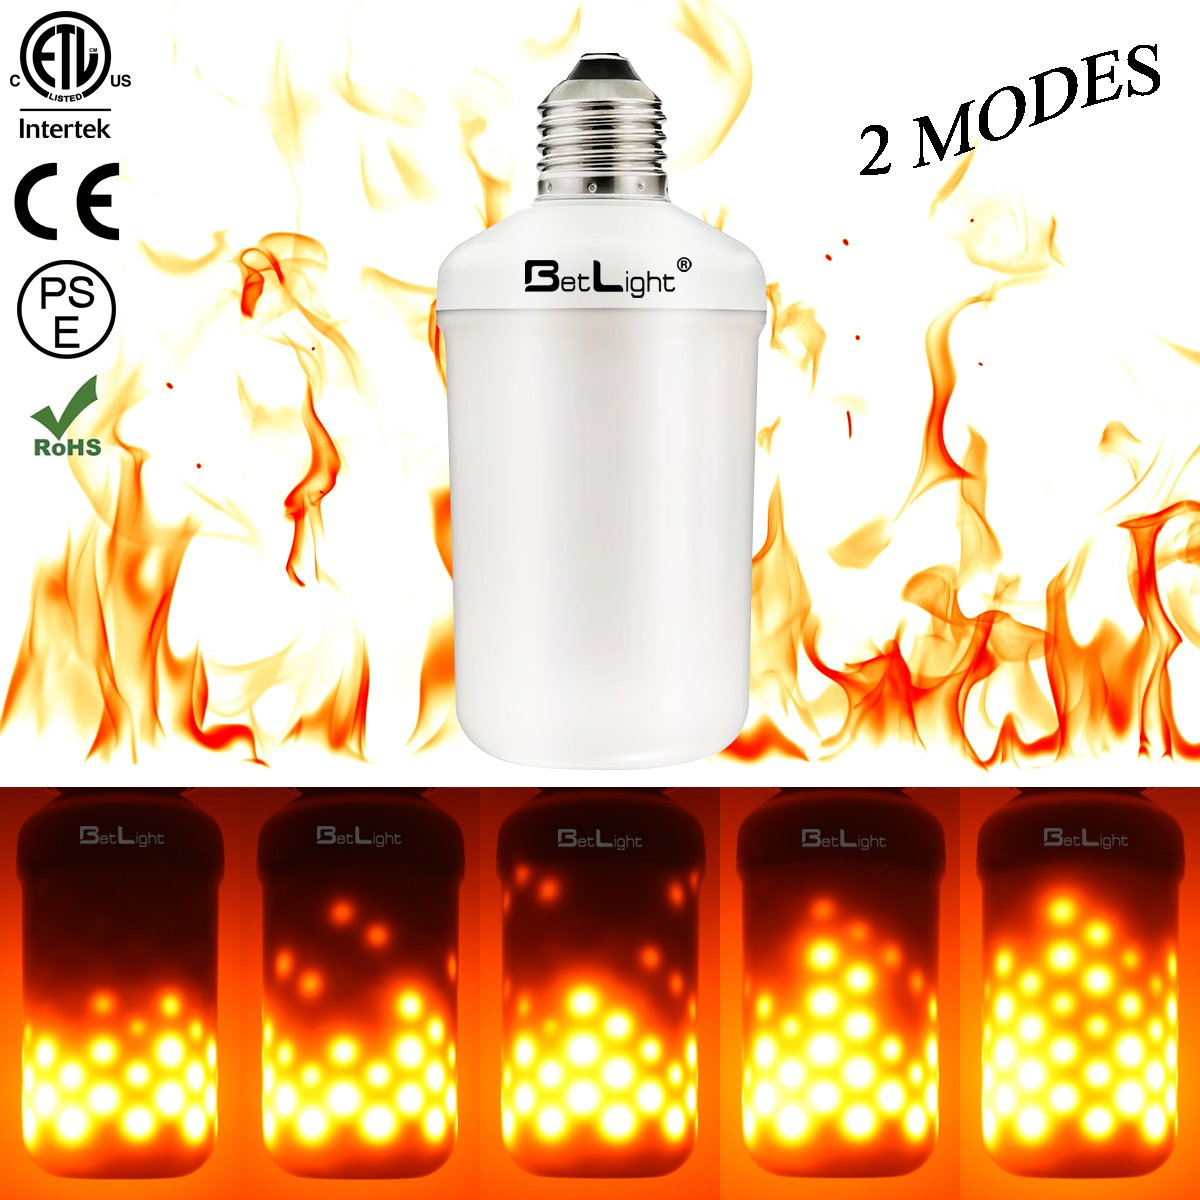 BT2W1M-6 BetLight Flame Bulb 2 Modes Flame Fire Down E26 Standard Base LED Flame Effect Light Bulbs,Fire Flickering Bulb for Valentines Day//Outdoor Garden//Hotel//Bars//Home Decoration